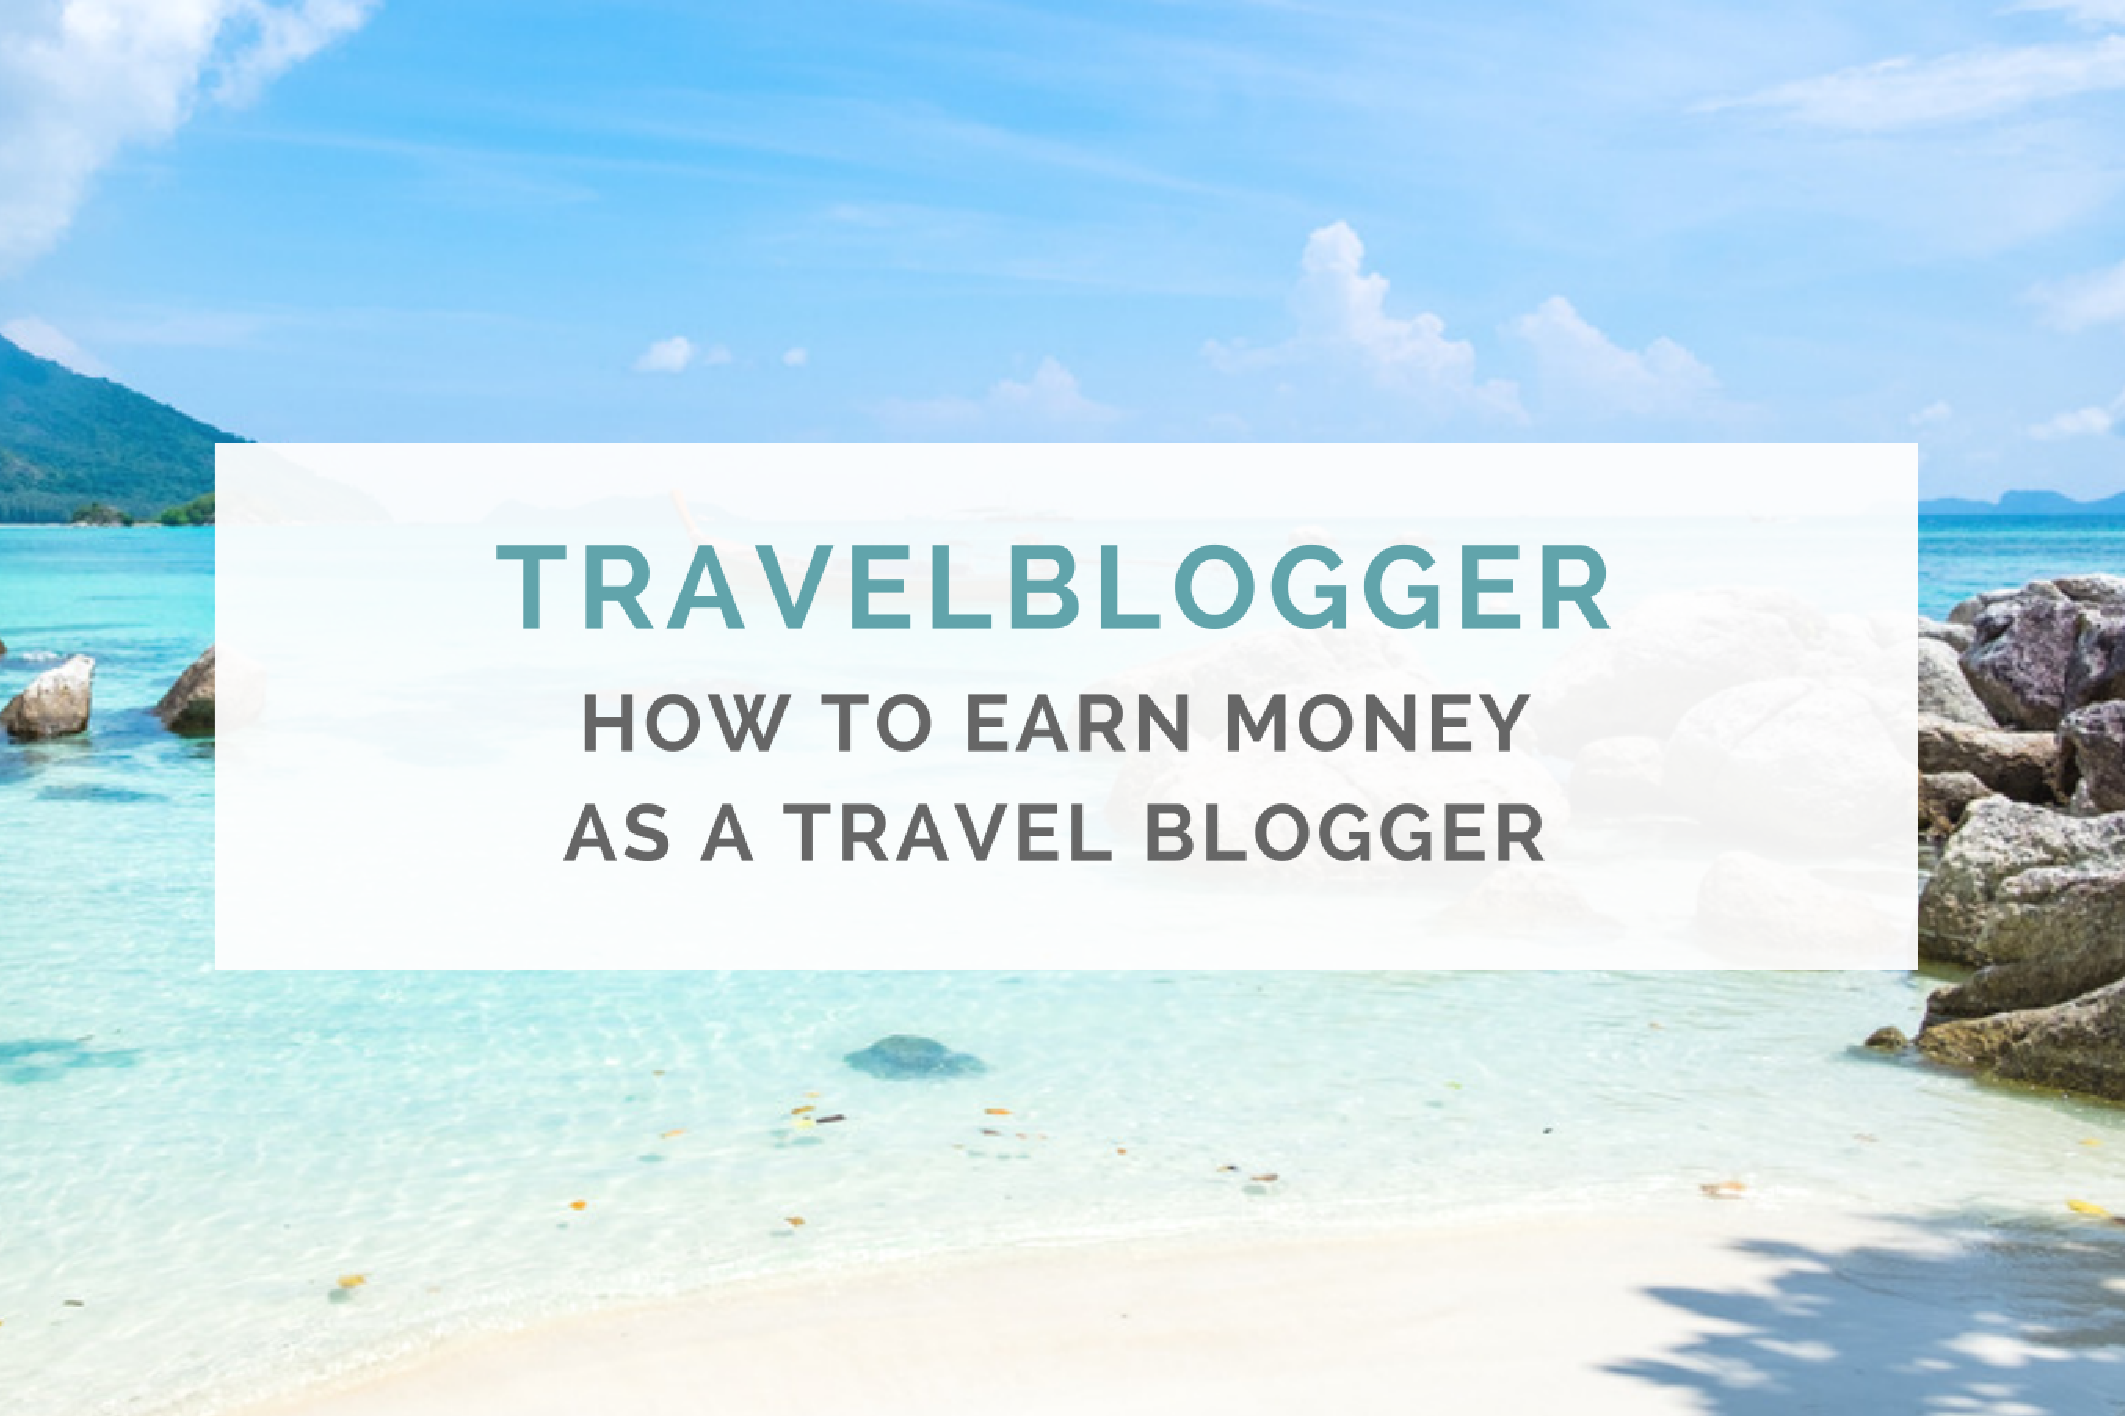 My Blog(ger) History & How to Earn Money as a Travel Blogger - Chic